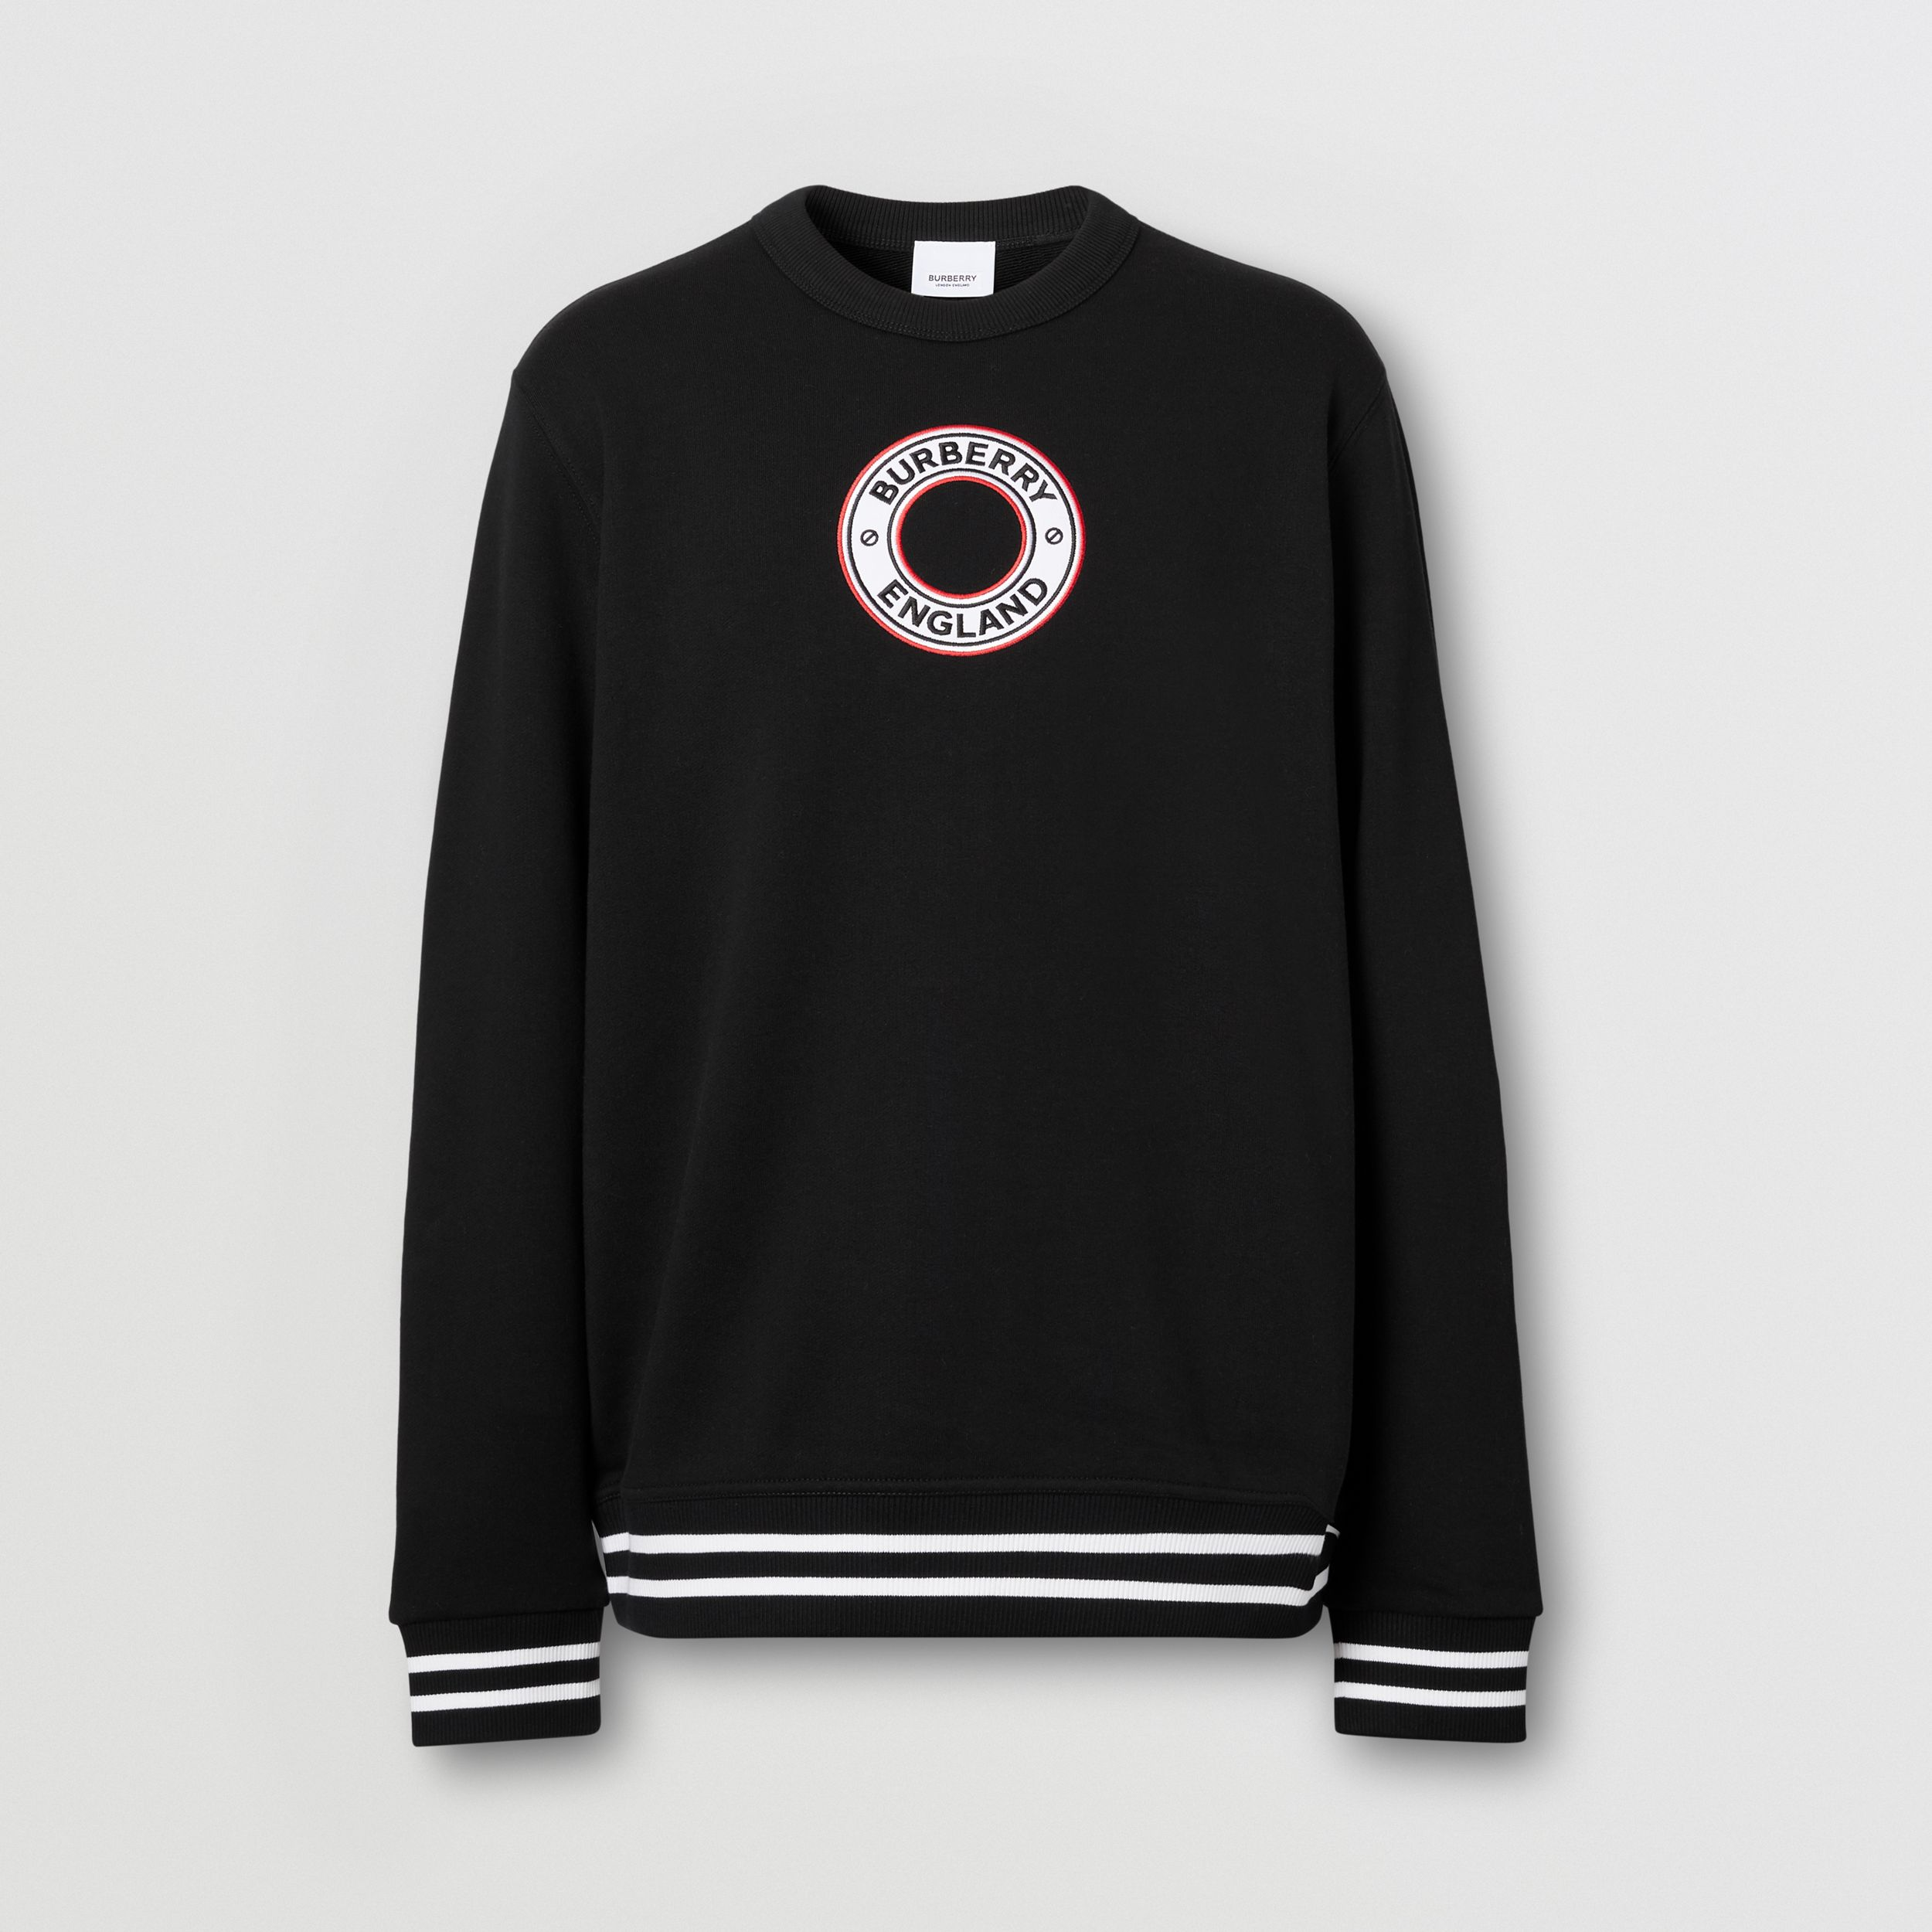 Logo Graphic Appliqué Cotton Sweatshirt in Black - Men | Burberry - 4